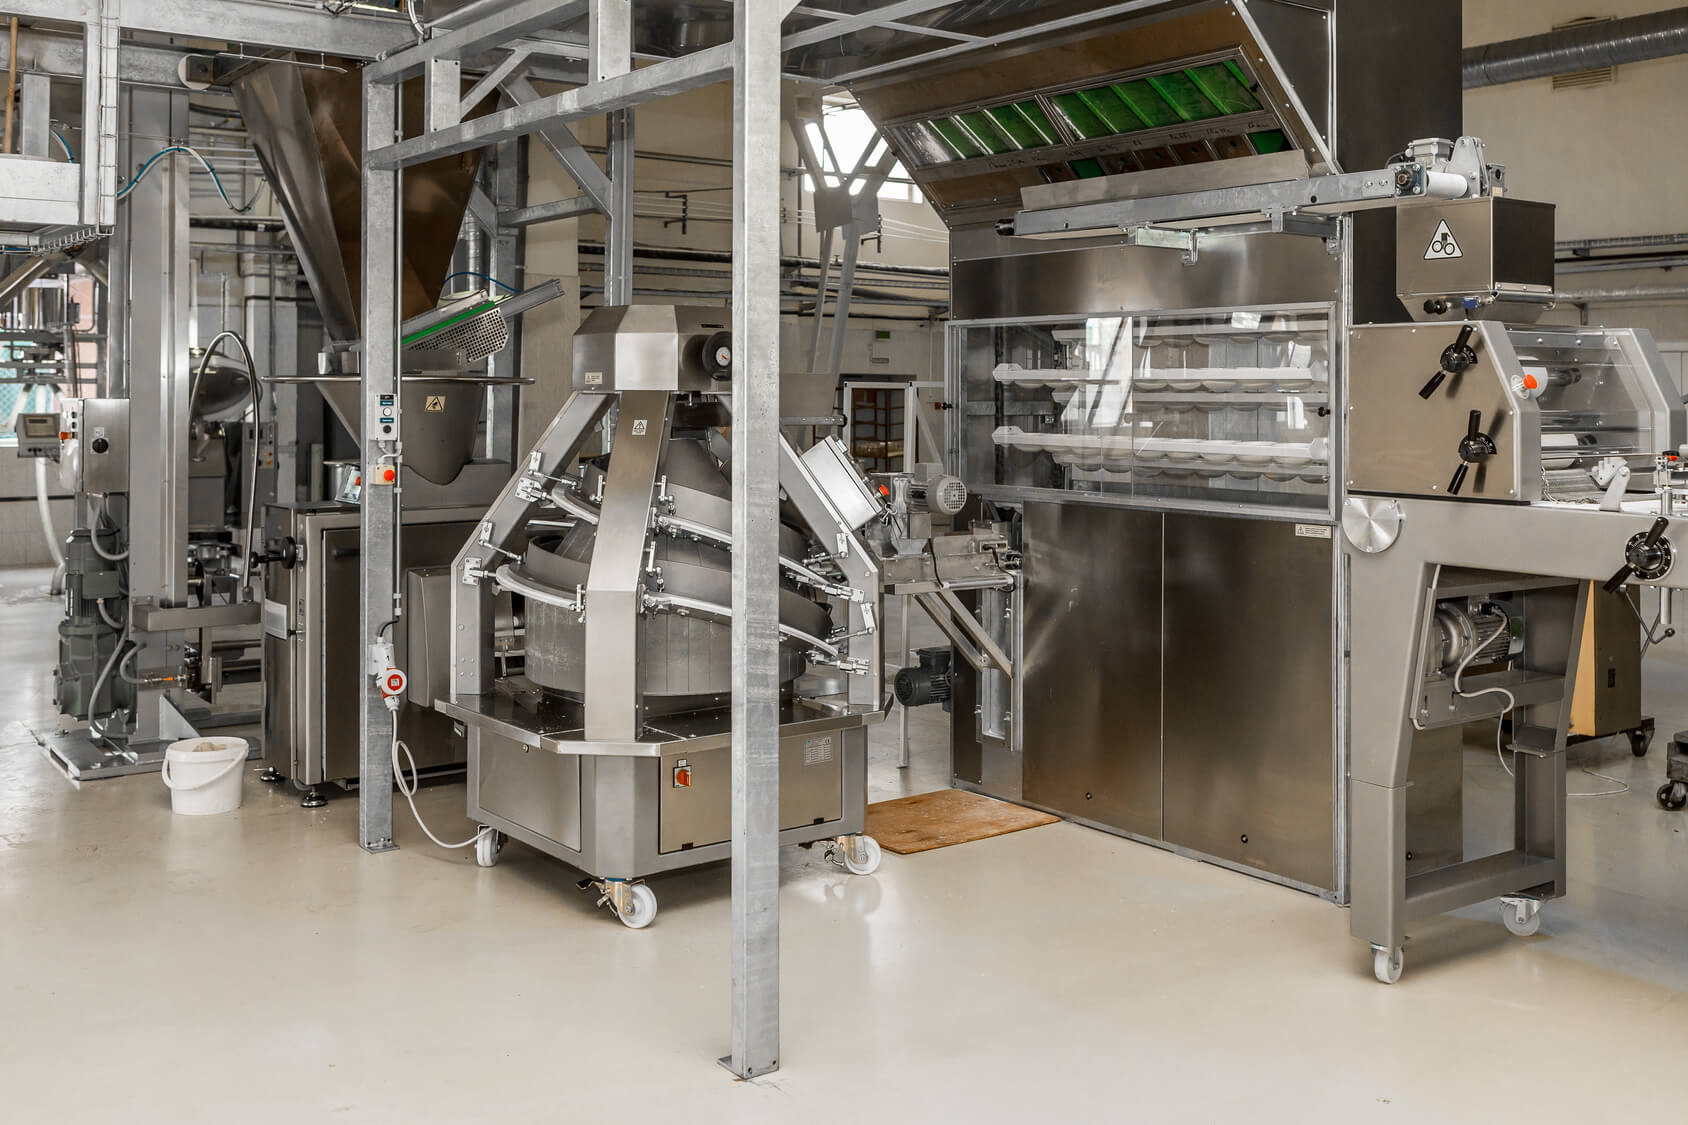 Commercial bread oven production area P & S Engineering.jpg